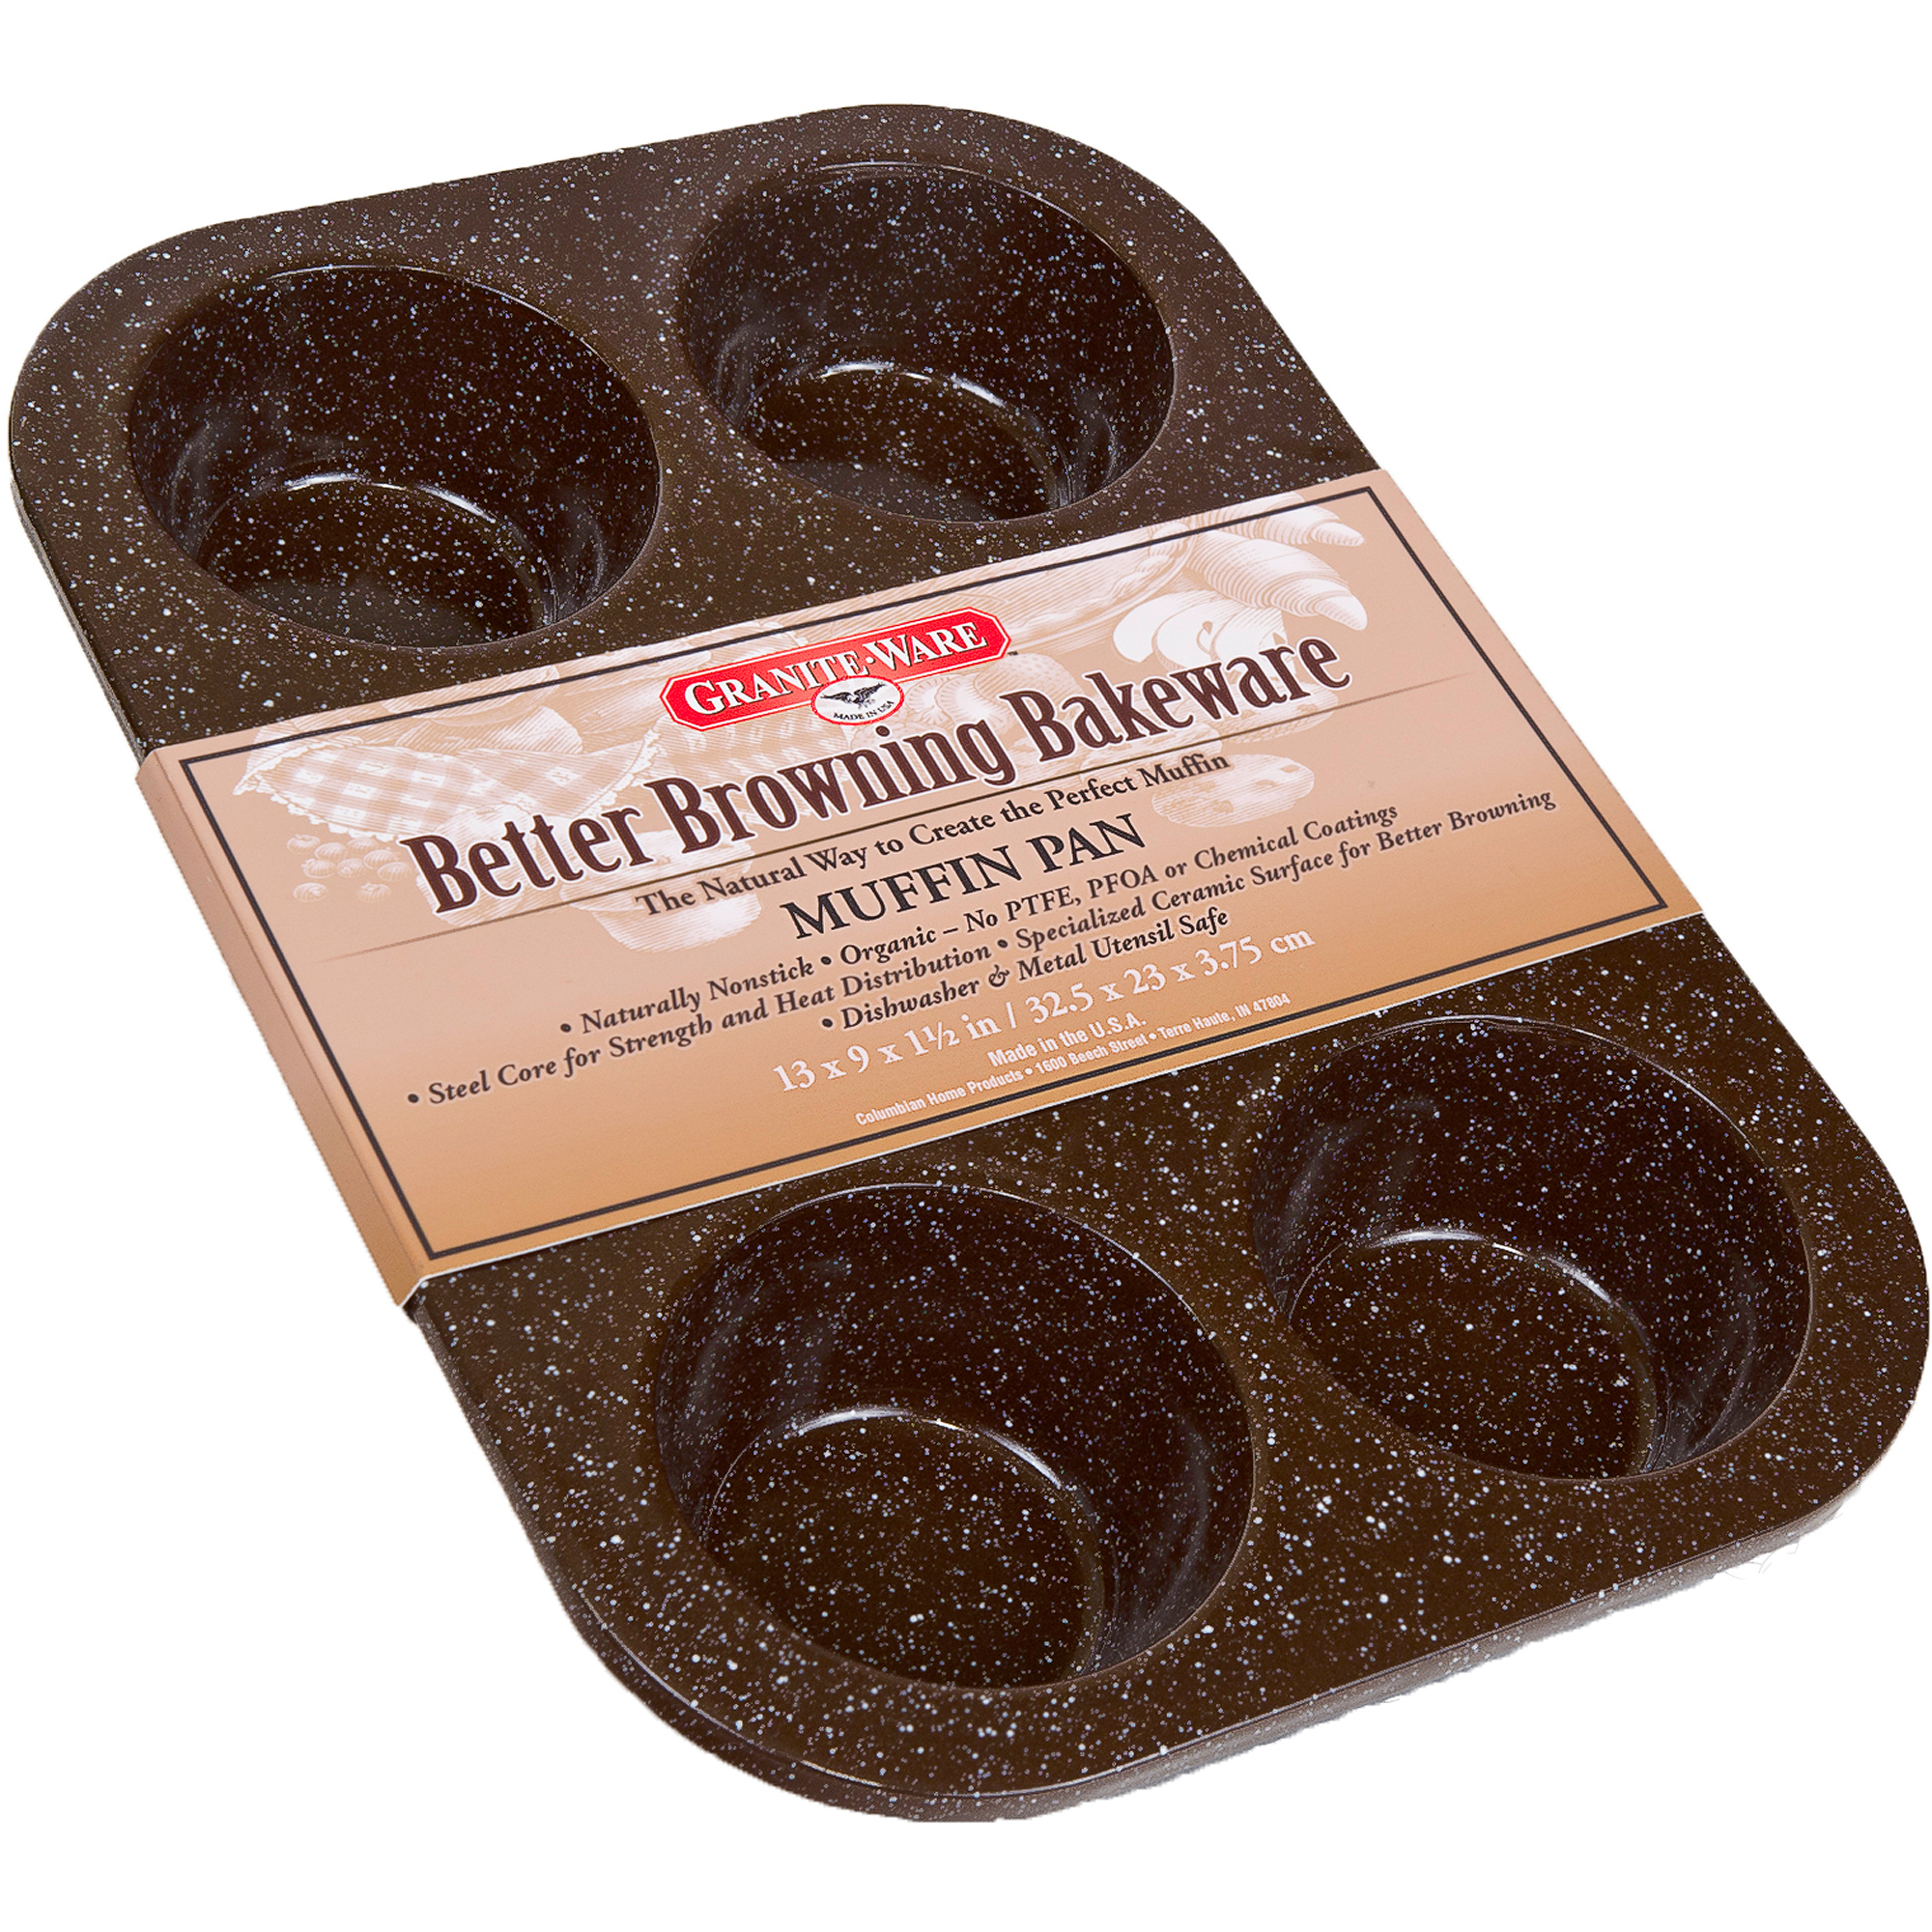 Granite Ware Better Browning Bakeware Muffin Pan, Brown